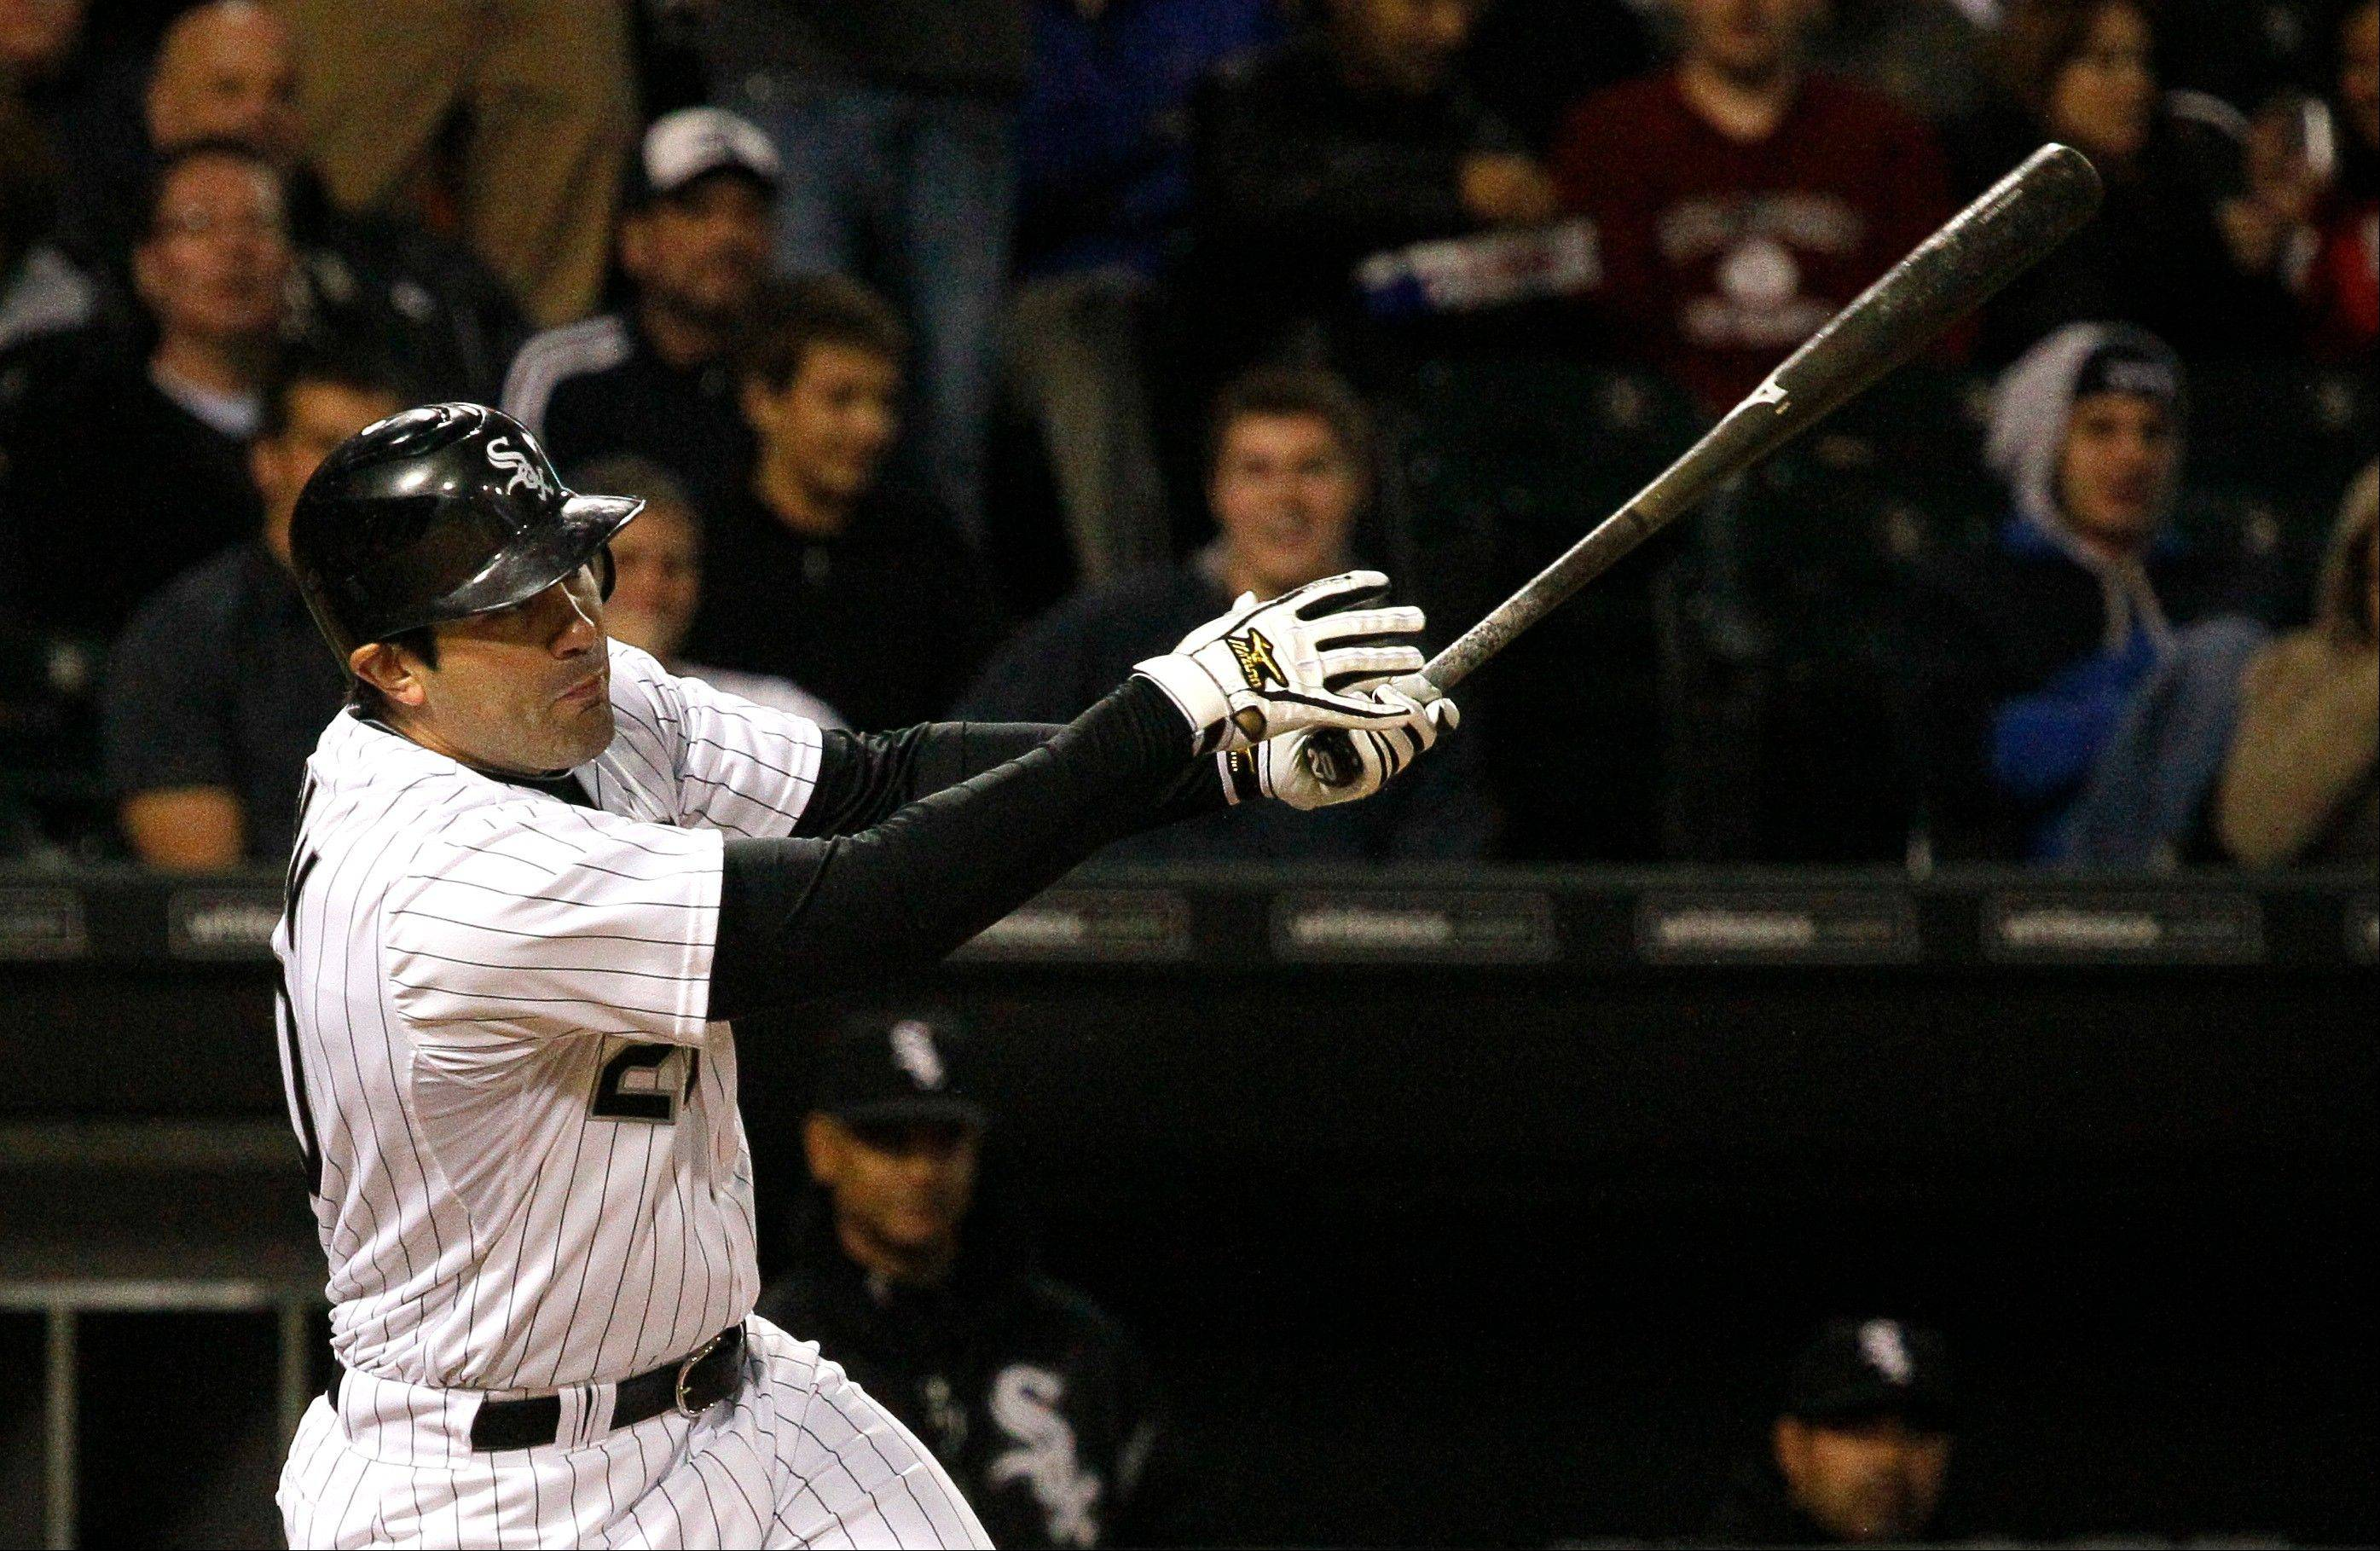 Like Ramirez, Sox bouncing back